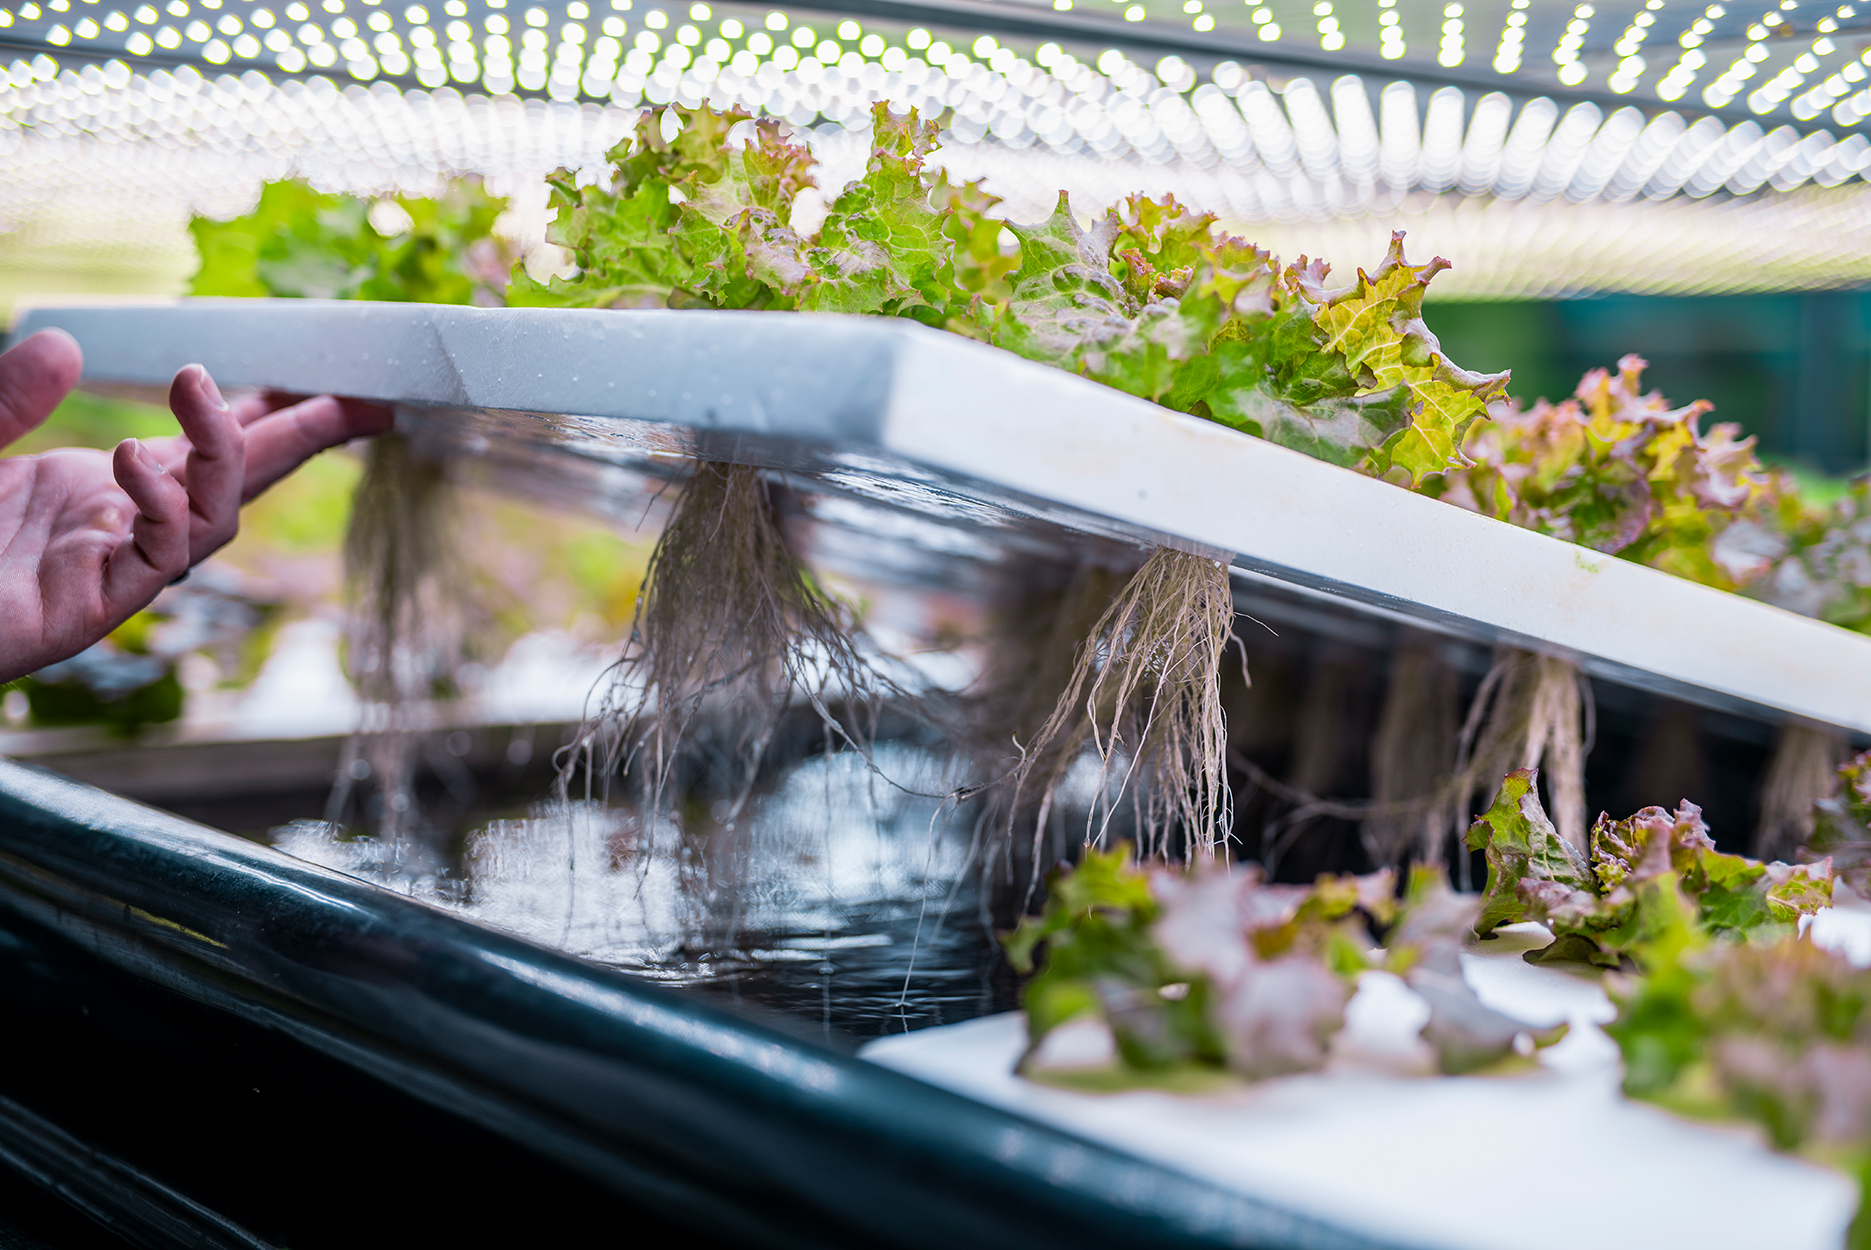 Indoor farming specialist lifting a rack of lettuce to reveal the hydroponic system and root structure.